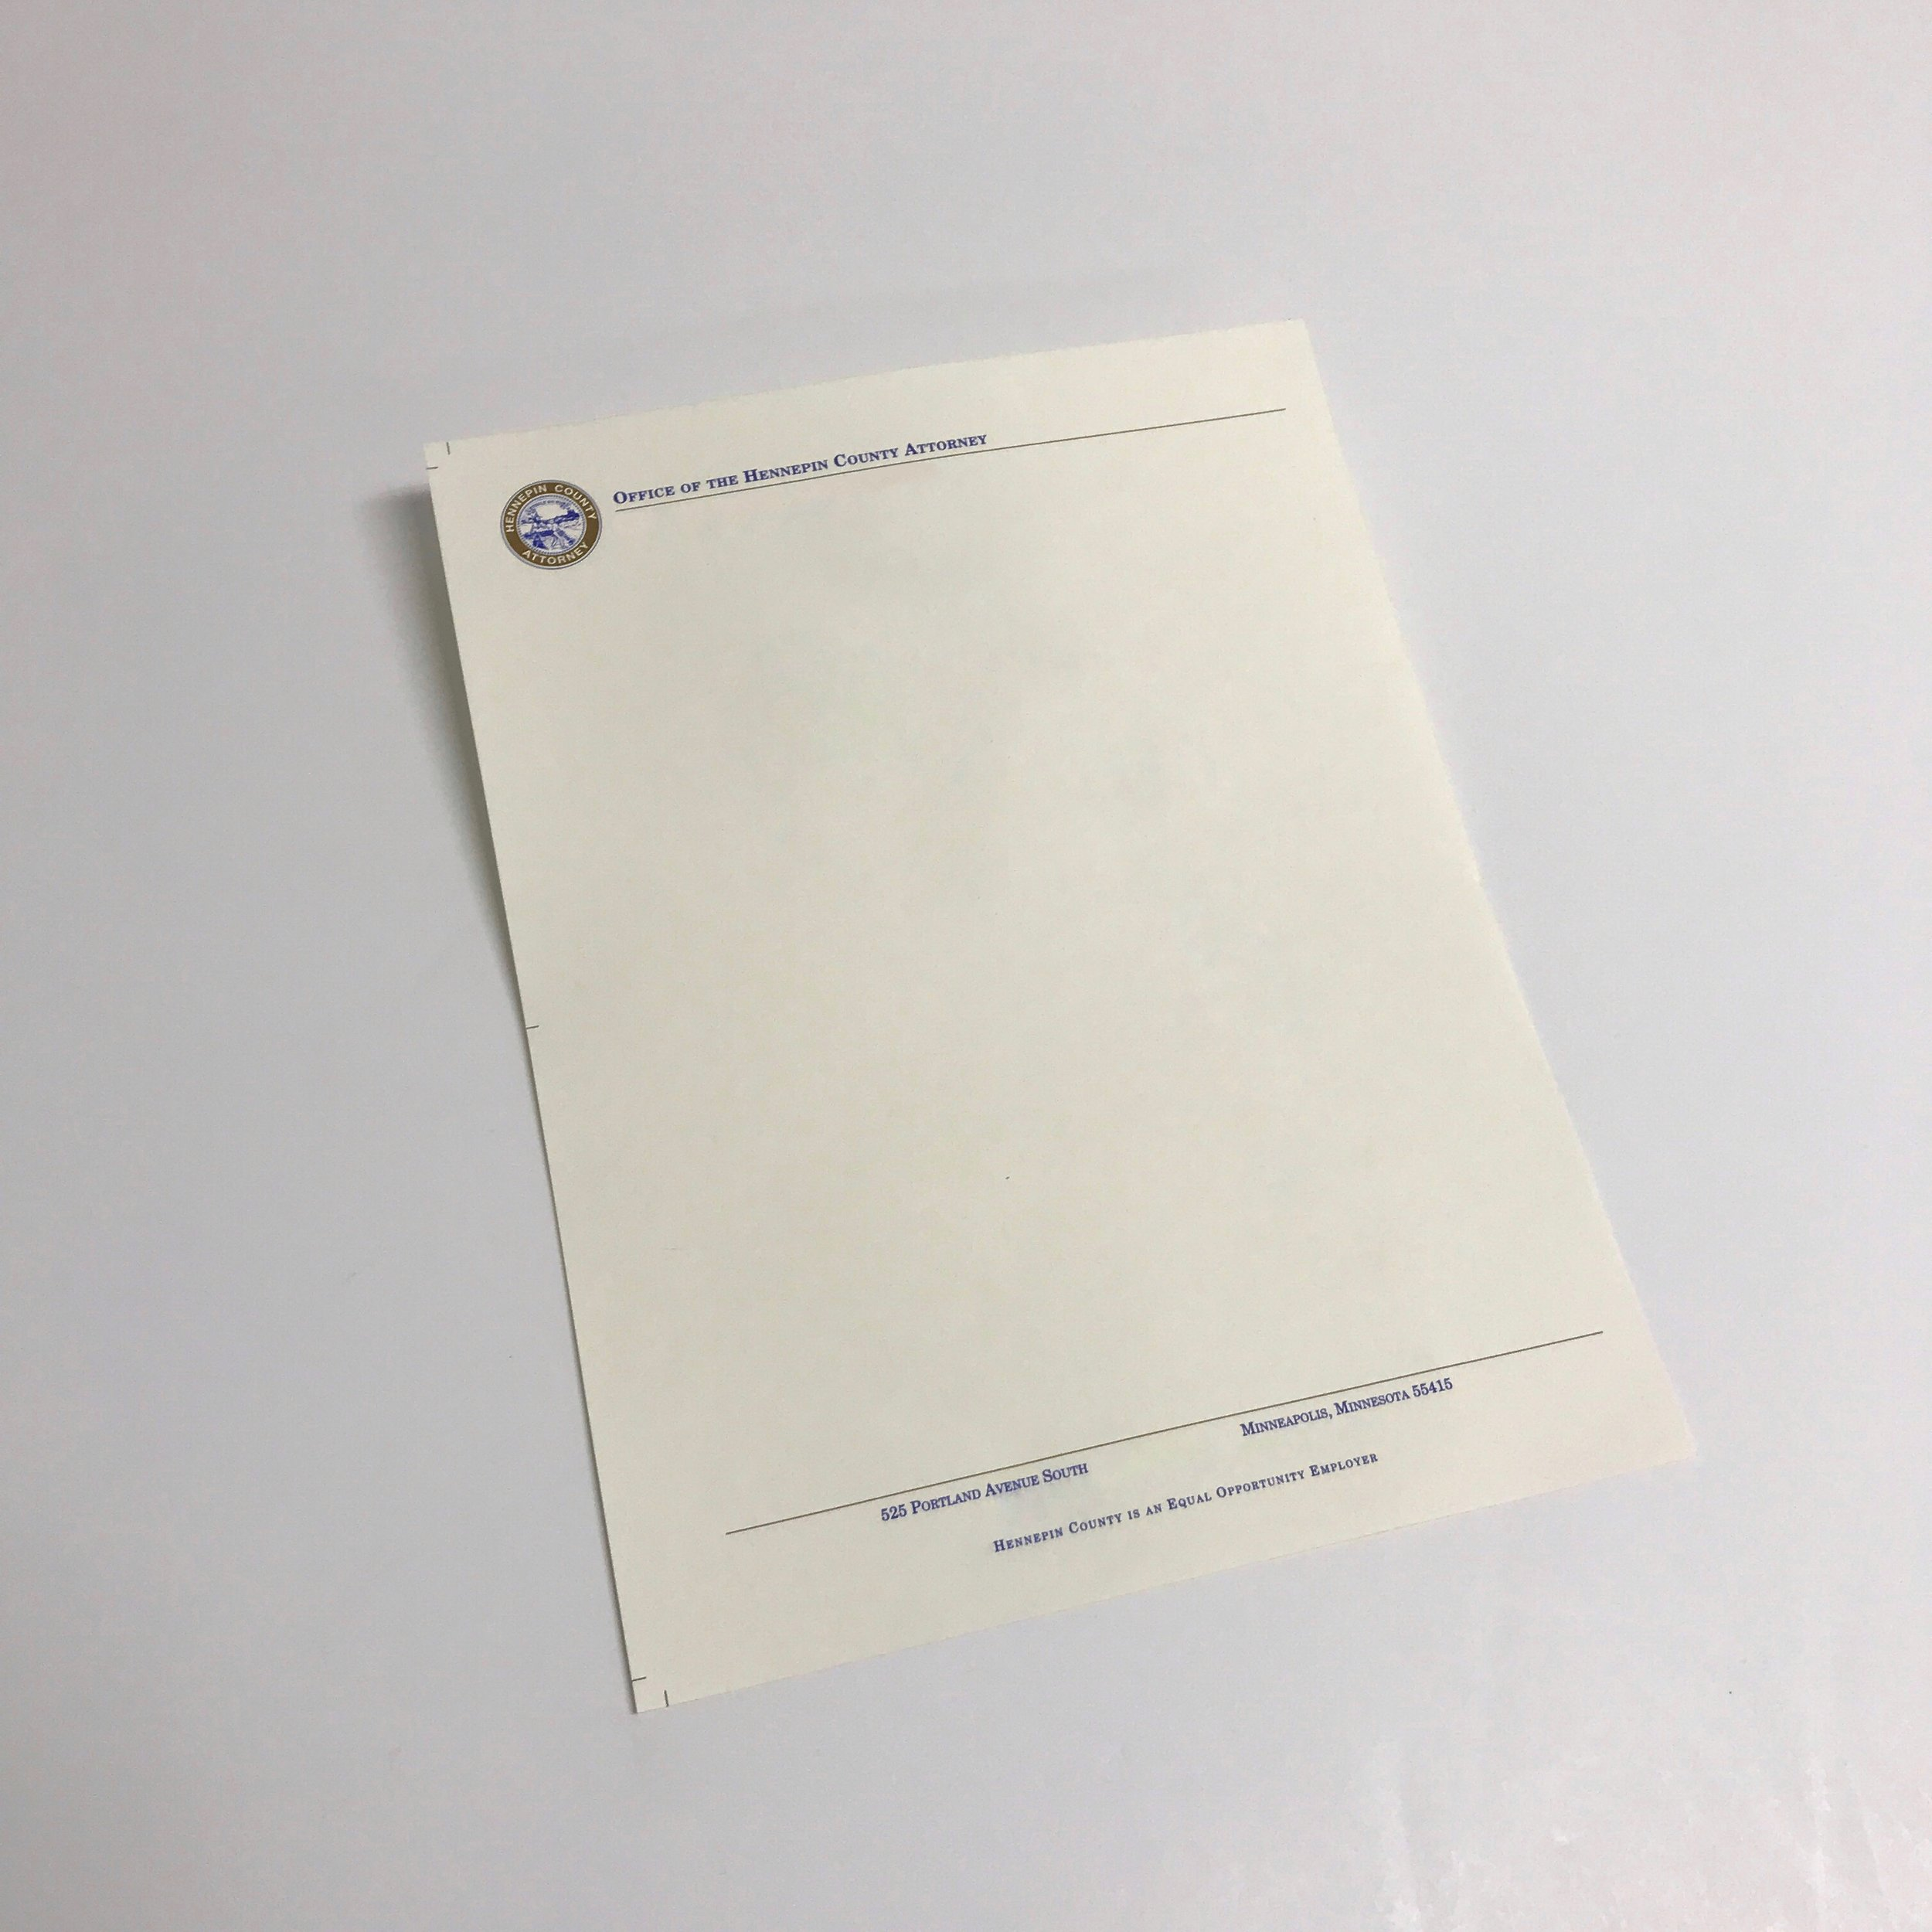 Professional corporate stationery printed in Minnesota